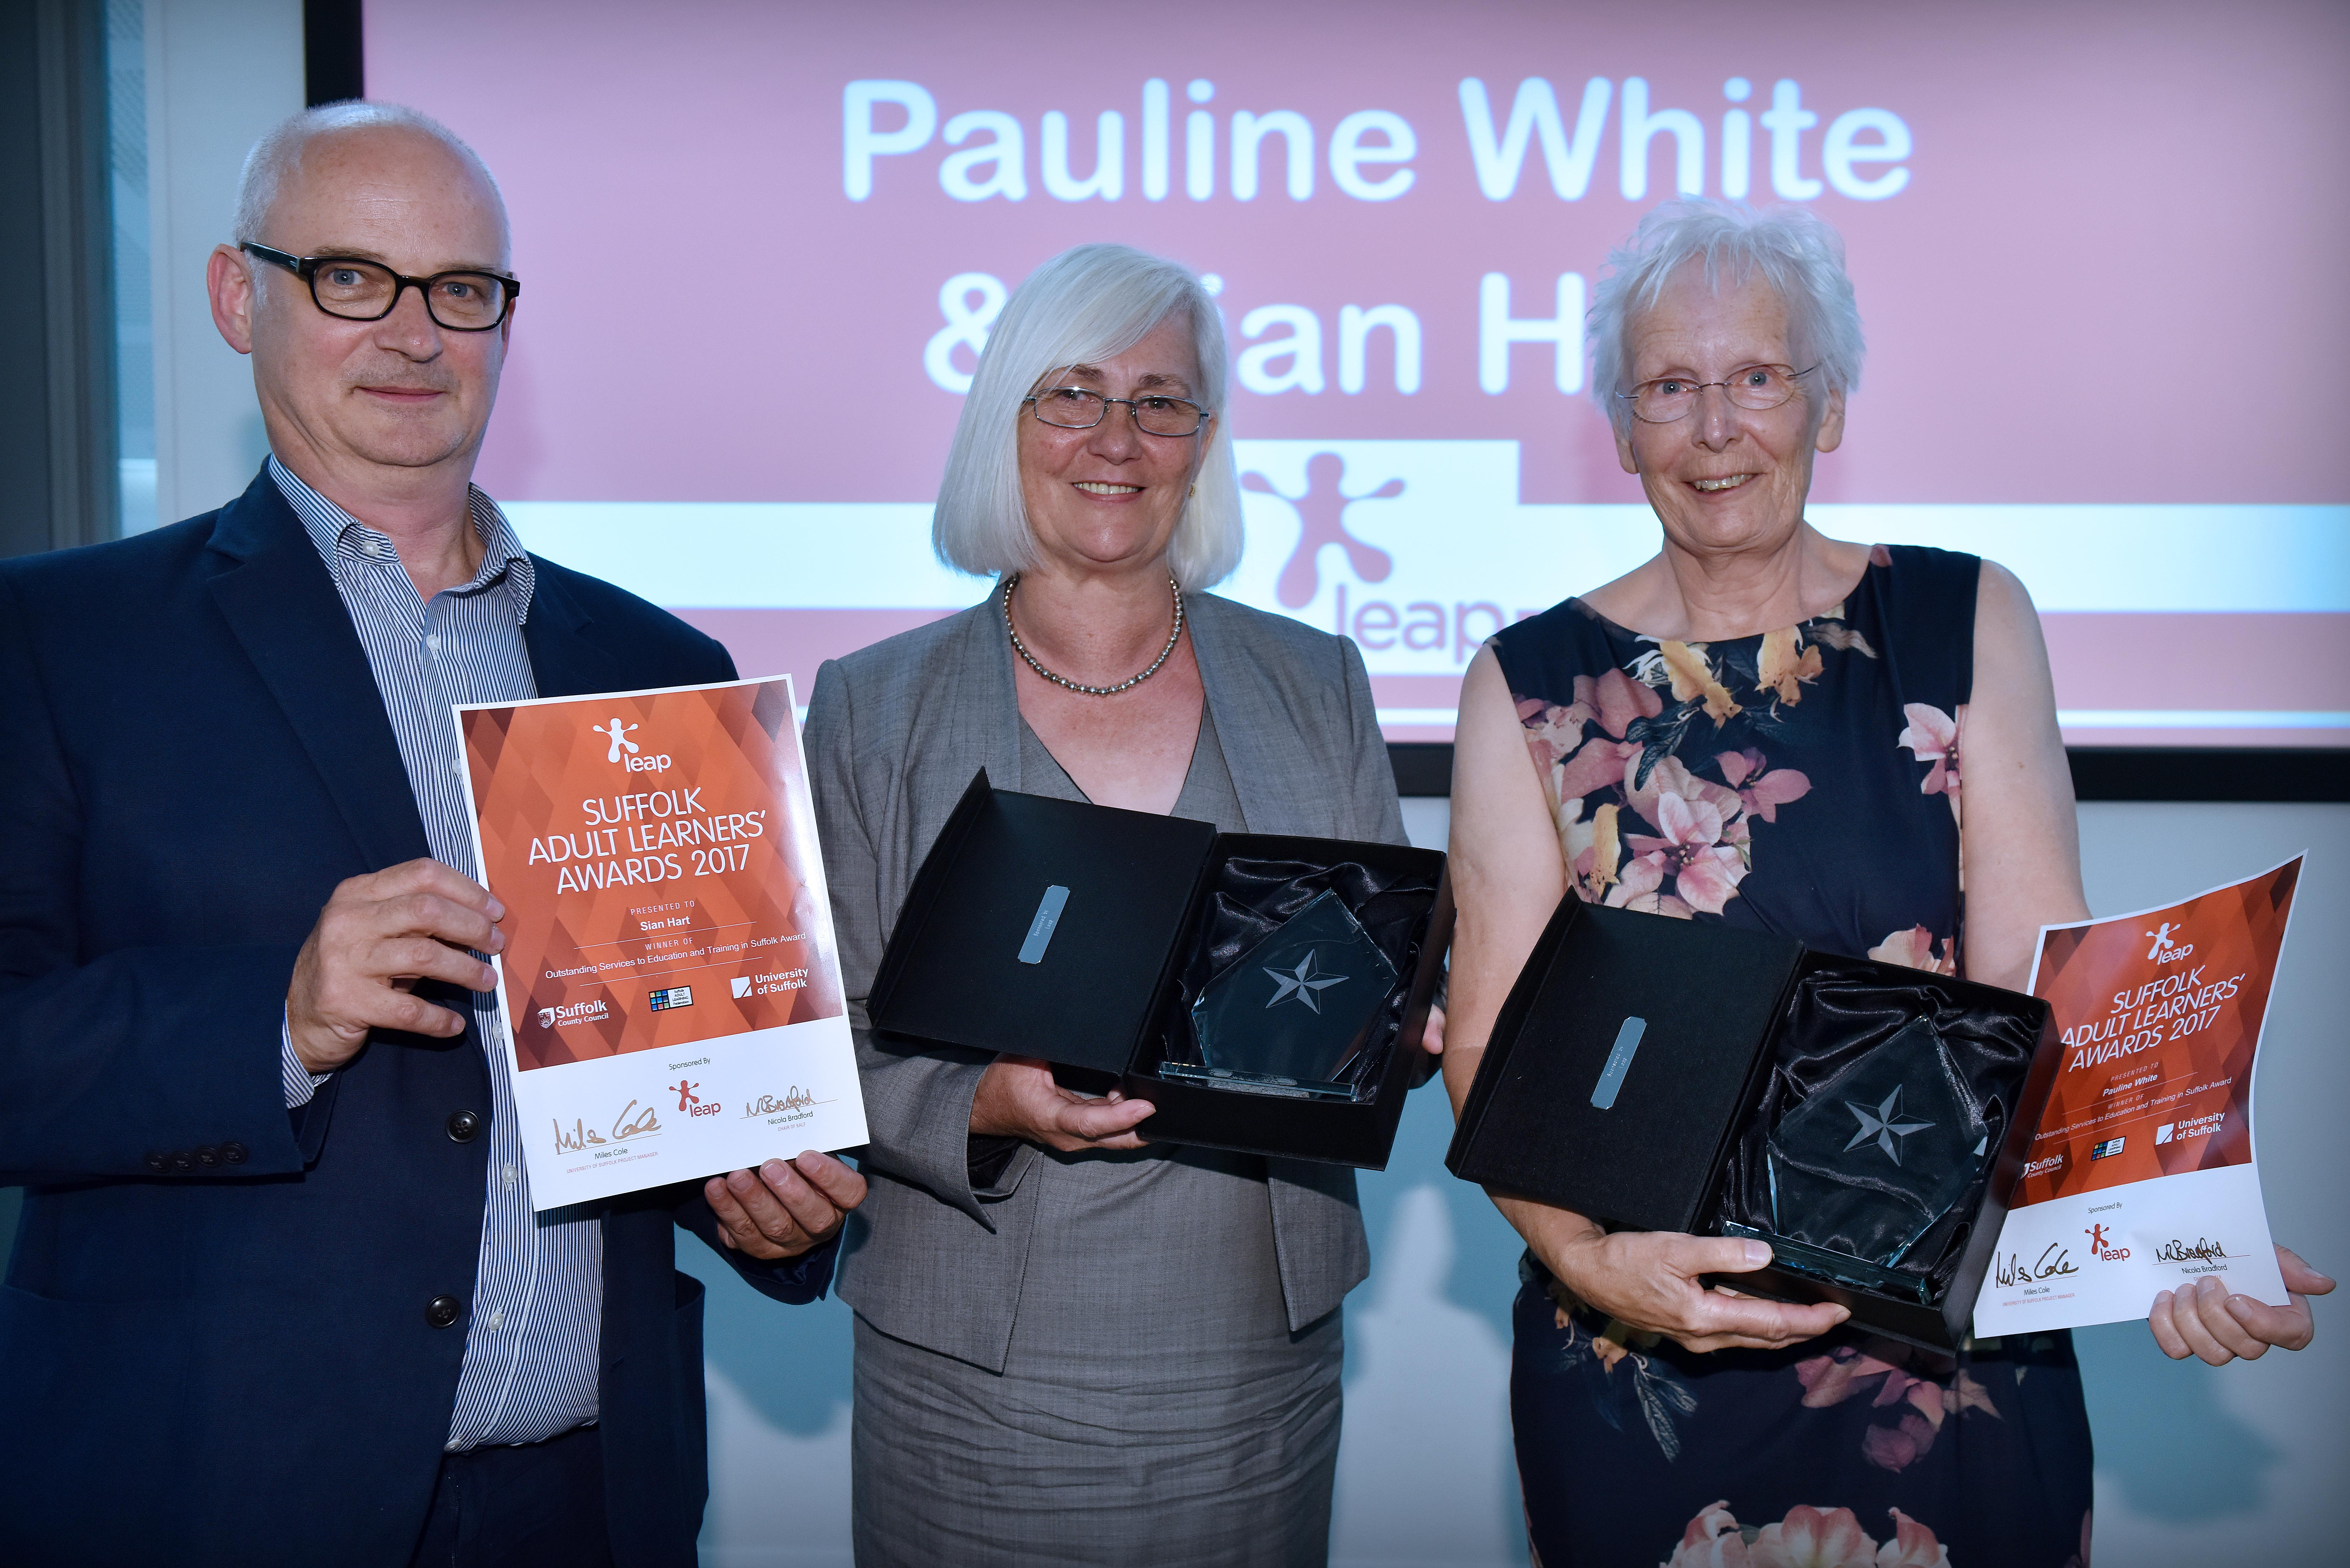 Winners of the Outstanding Services to Education & Training in Suffolk Award 2017Pauline White & Sian Hart from Coastal Leisure Learning